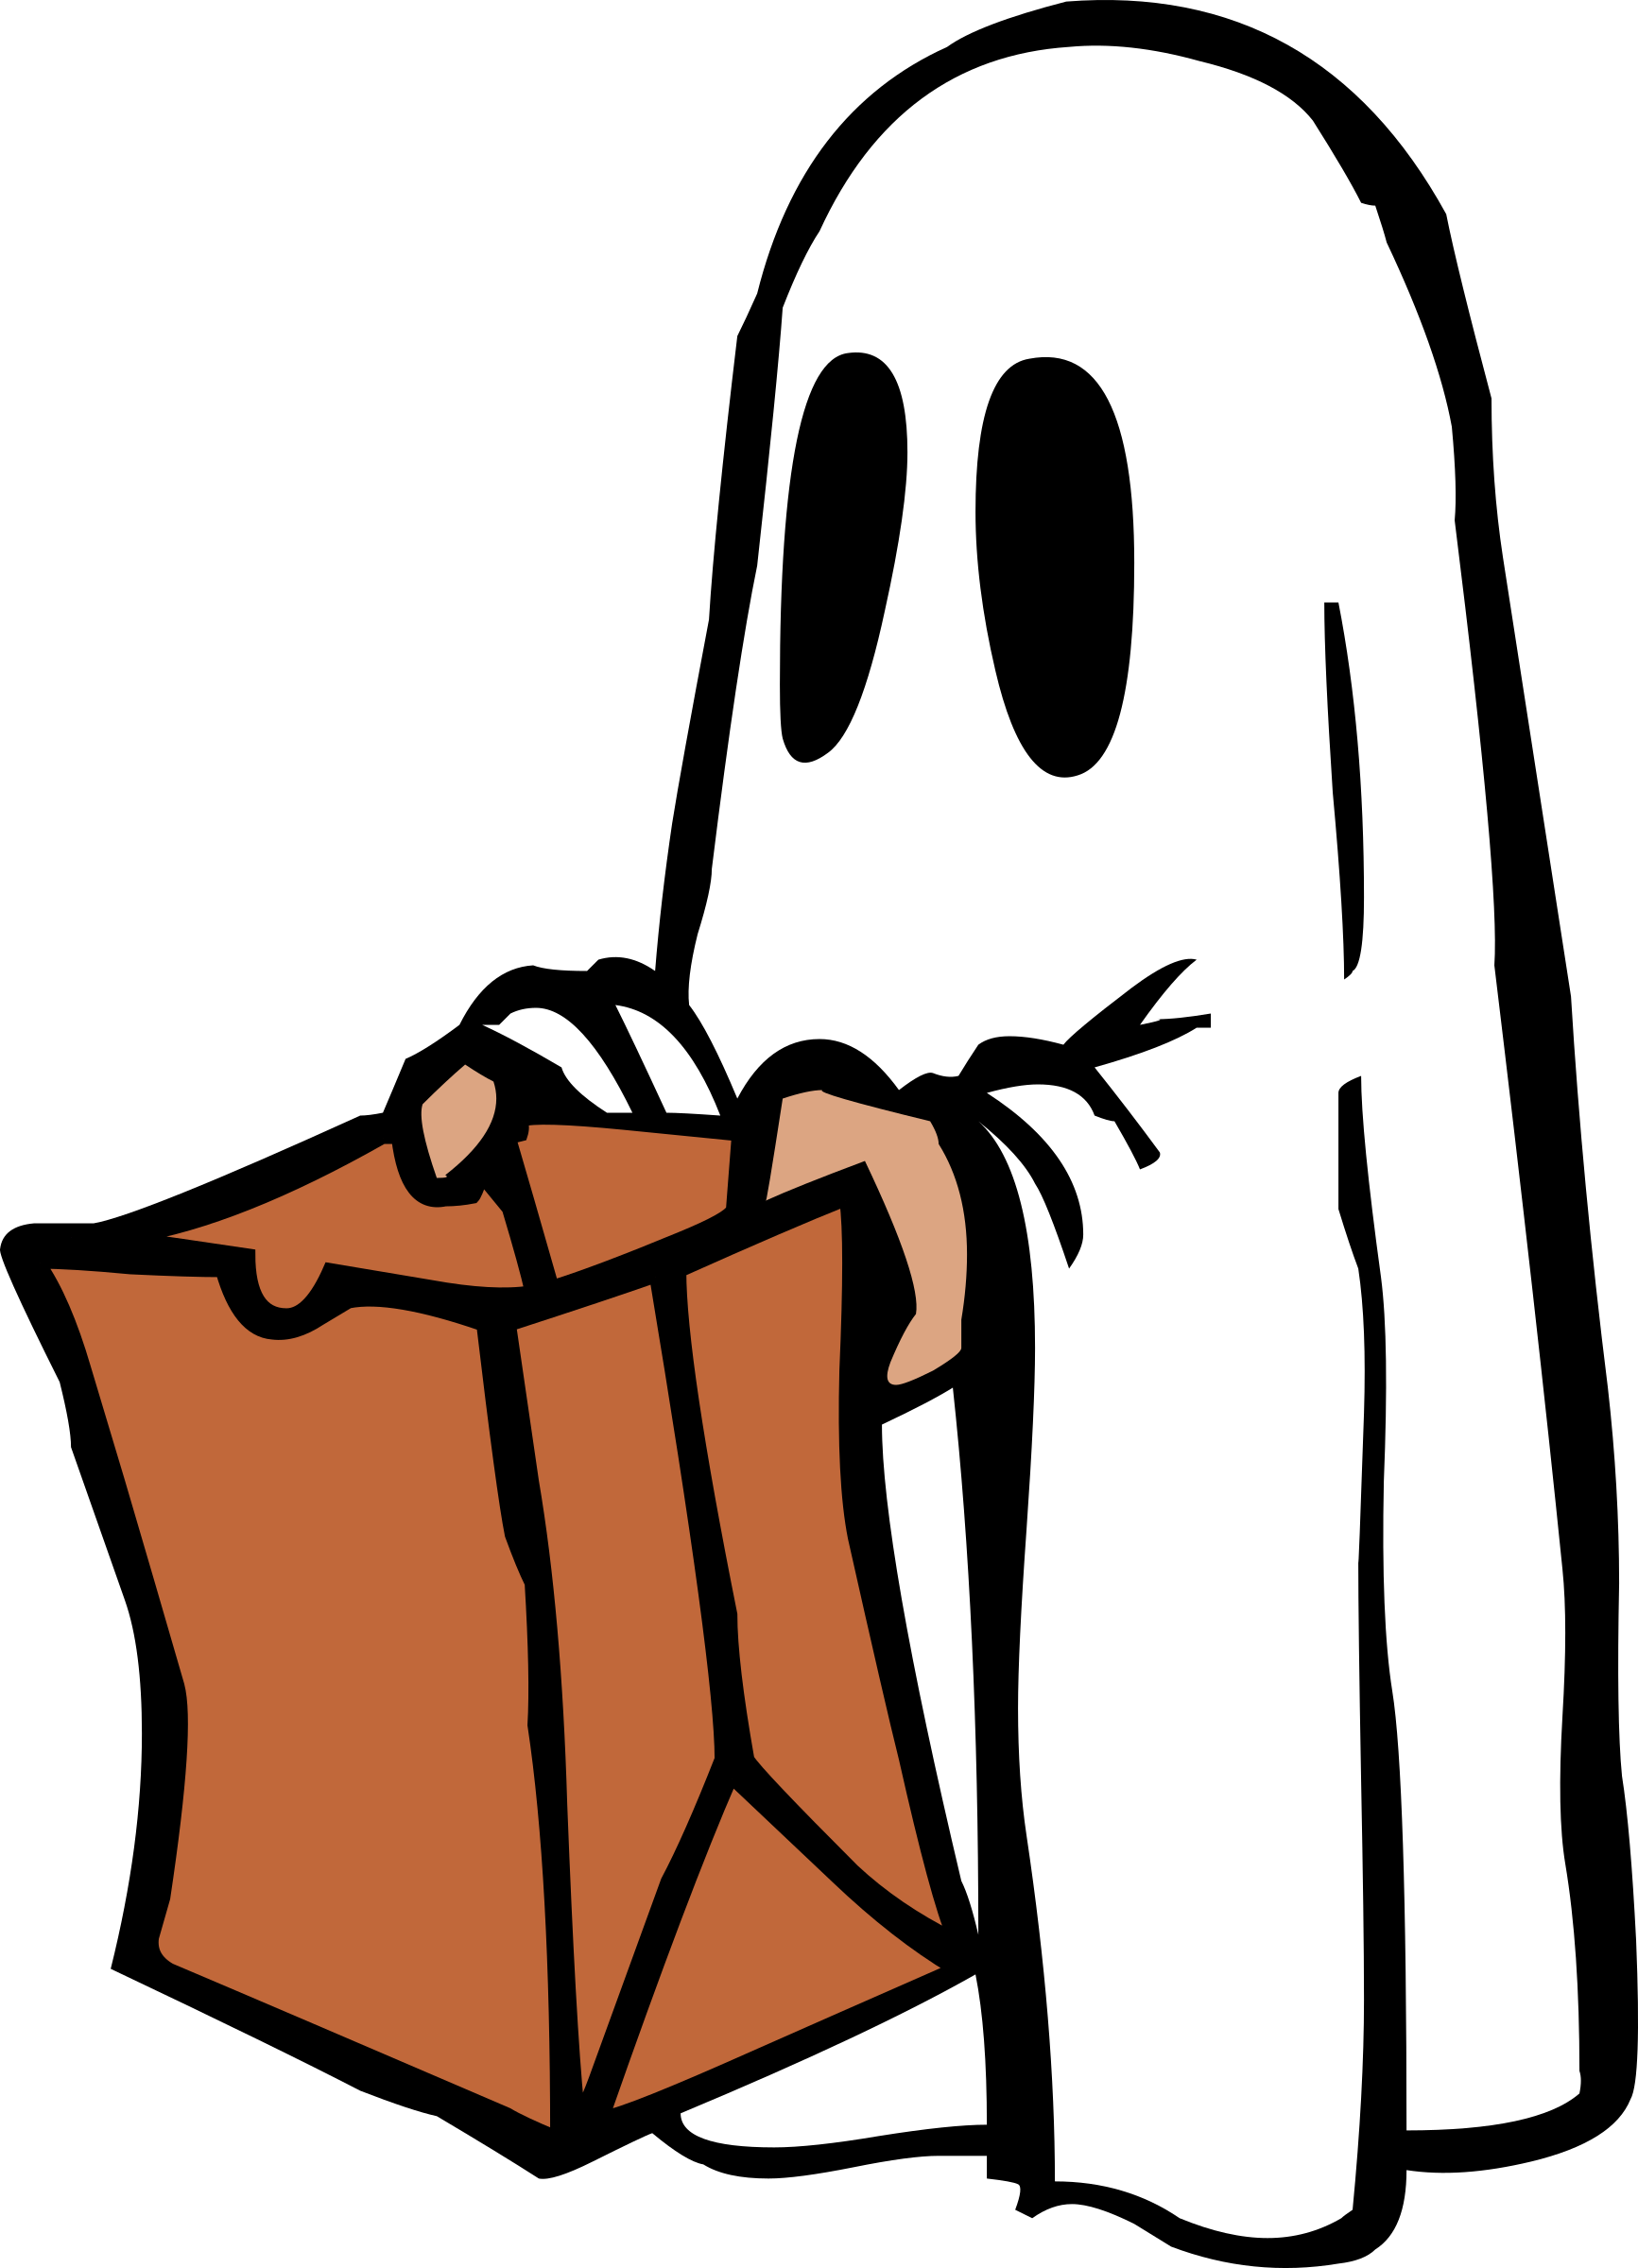 Boo clipart for halloween free stock Cartoon Ghost Clipart at GetDrawings.com | Free for personal use ... free stock